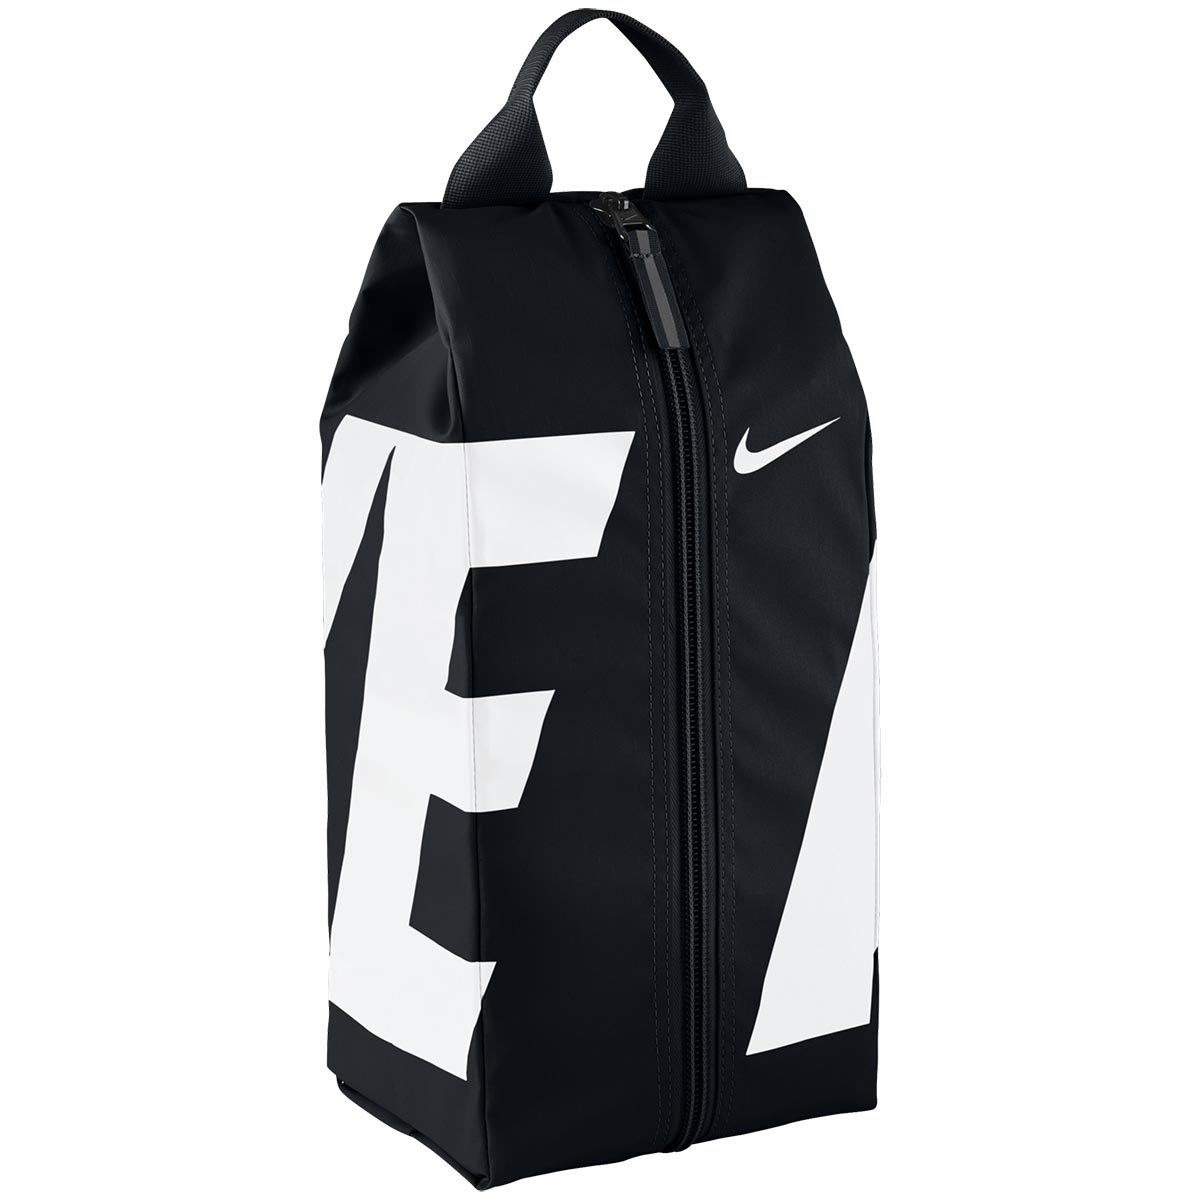 Nike Alpha Adapt Training Shoe Bag Online at Lowest Price in India 5f86617430